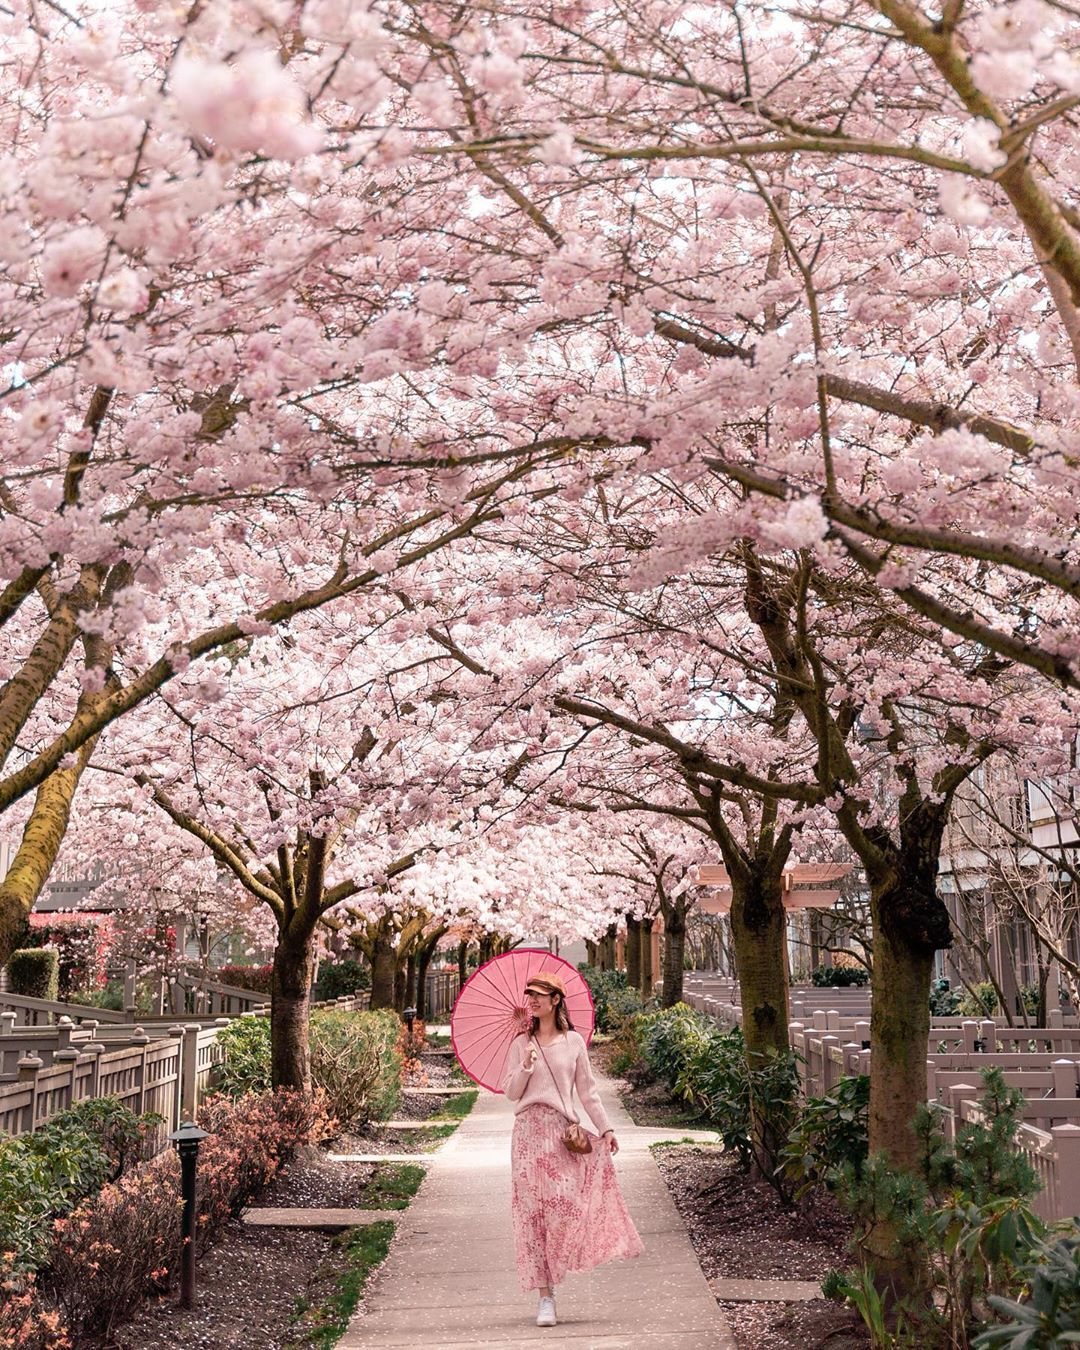 It S Raining Cherry Blossoms In Vancouver Right Now It S So Magical Photos Cherry Blossom Festival Cherry Blossom Cherry Blossom Season